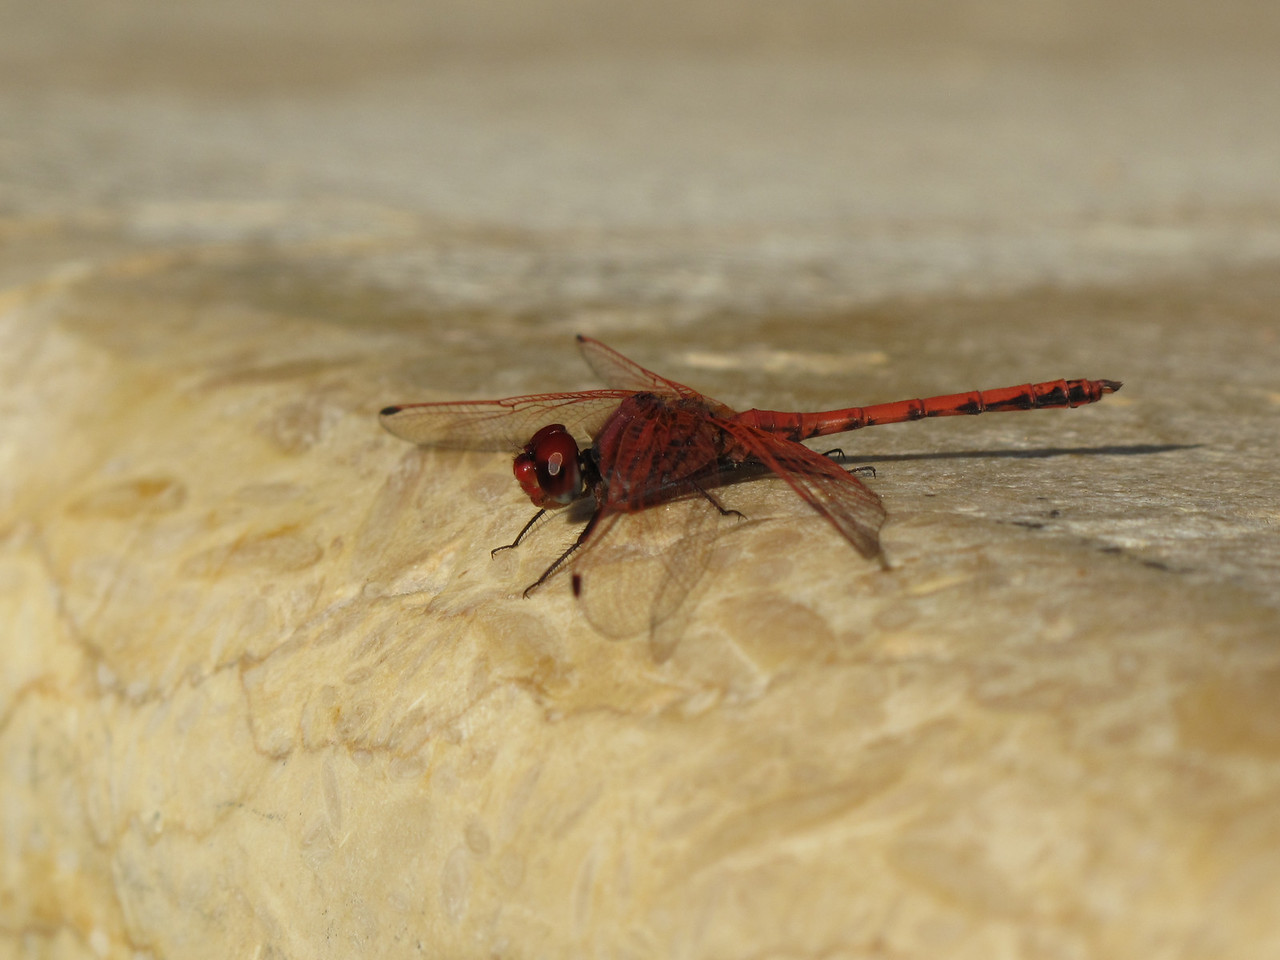 We saw this unusual red dragonfly at the pool.